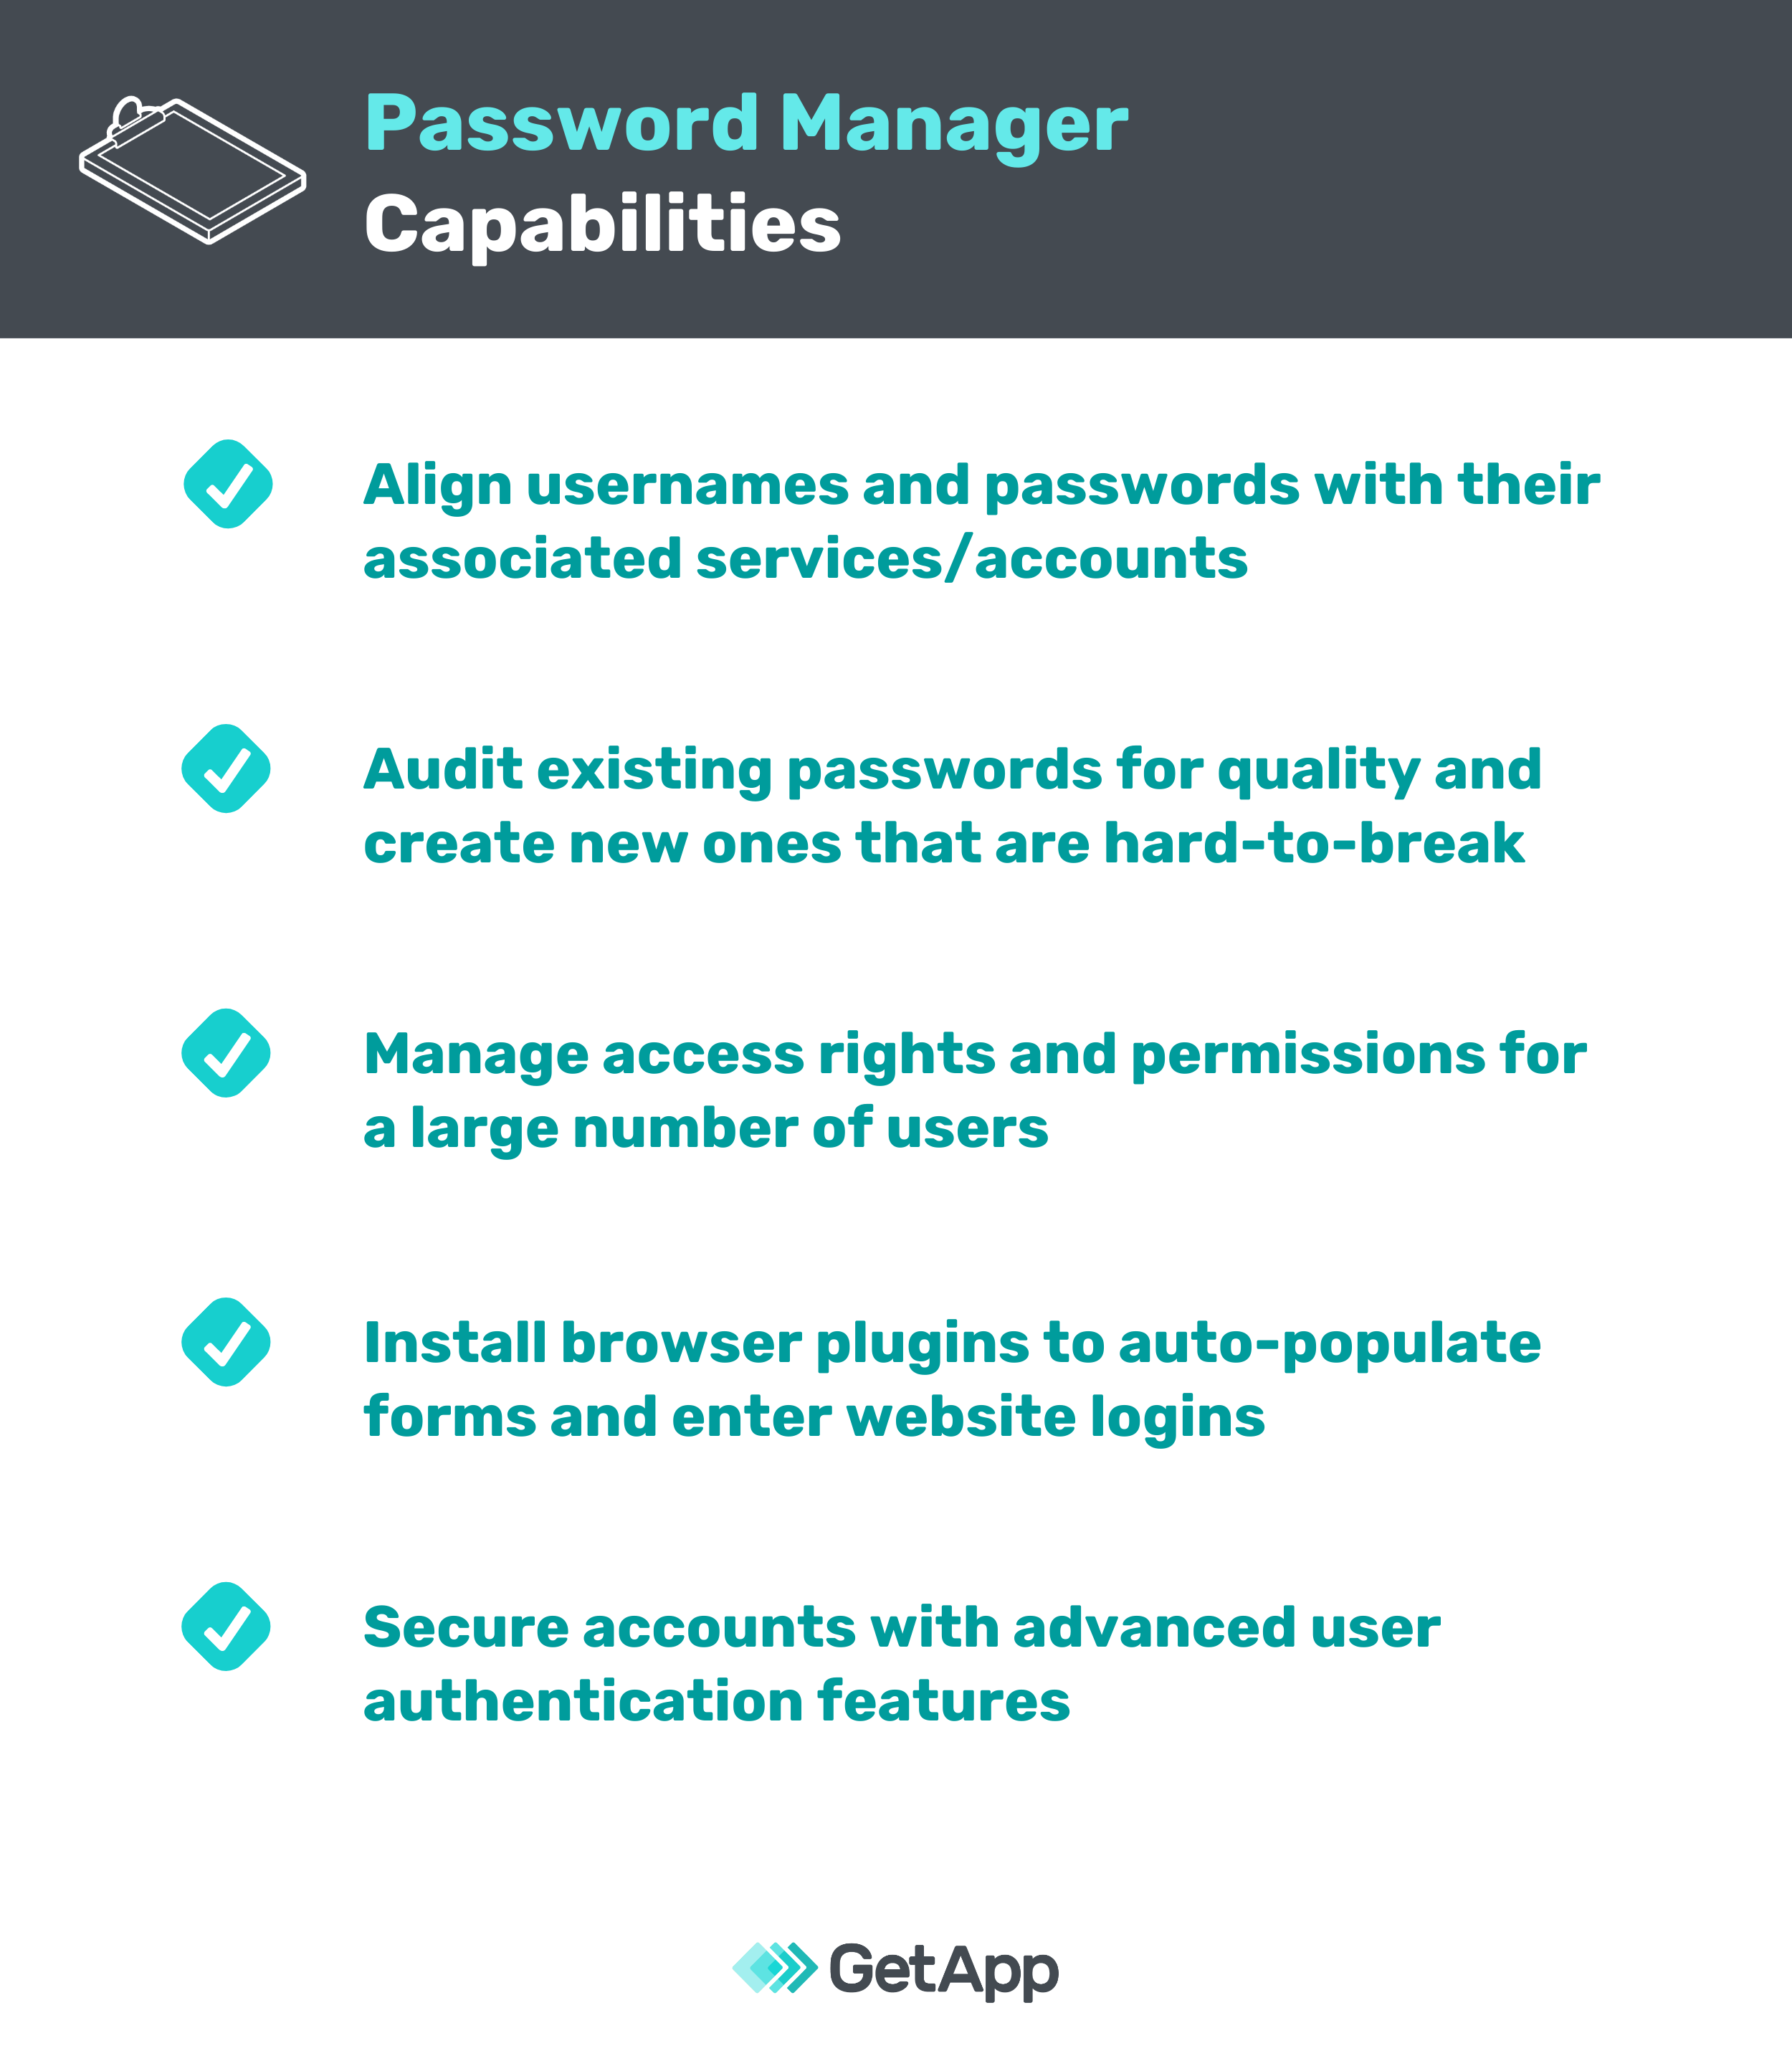 Graphic showing the capabilities of password manager software